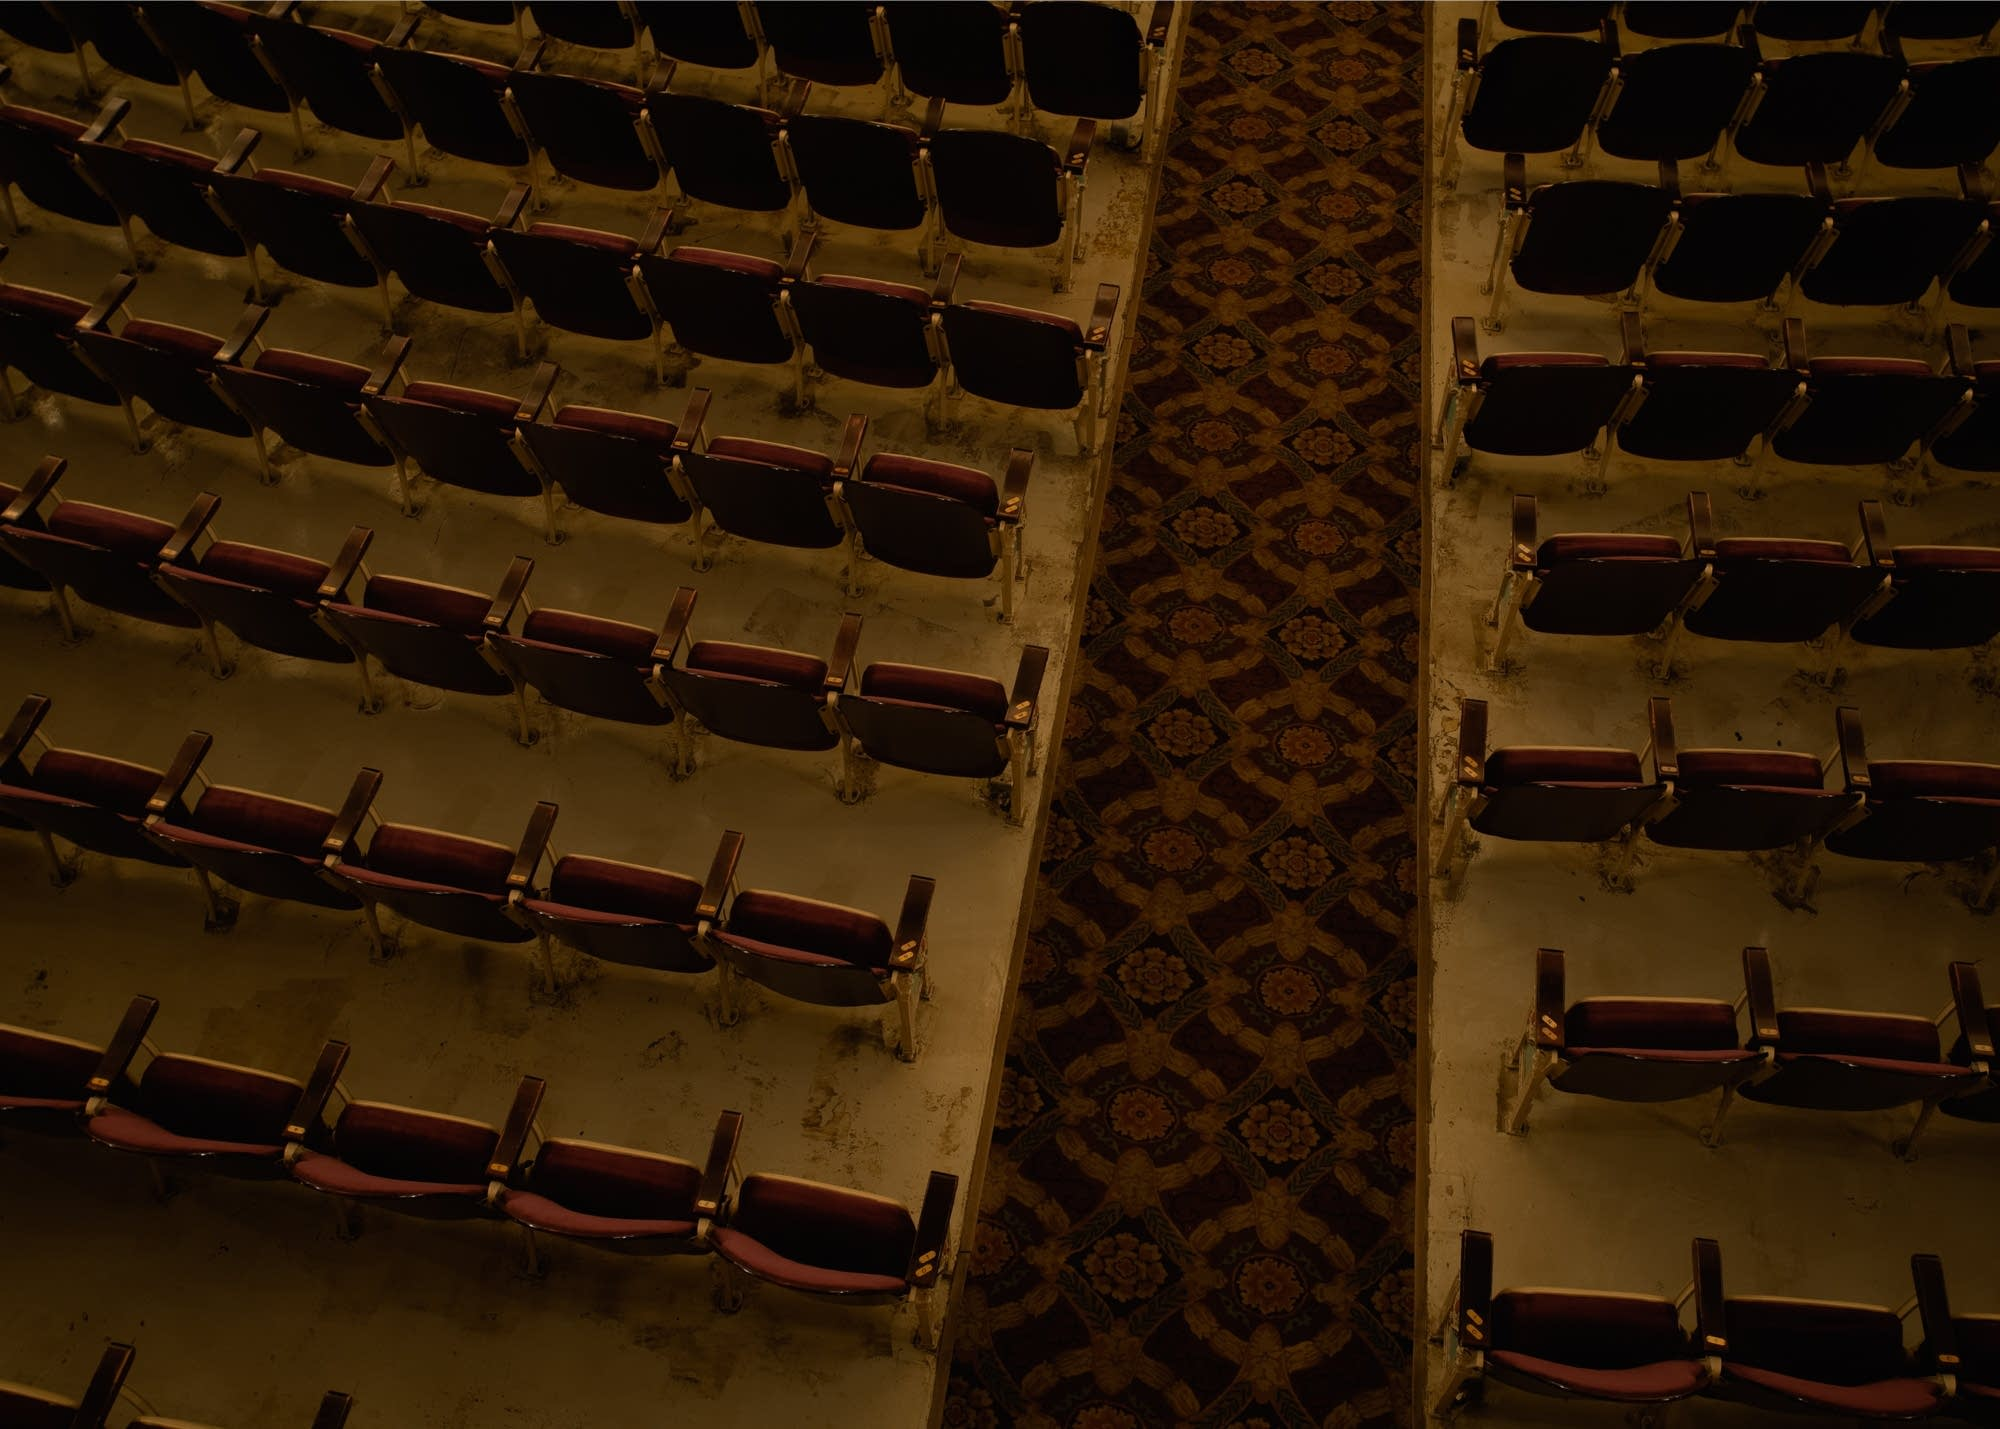 Rows of empty red chairs are bisected by a patterned, lush carpet.